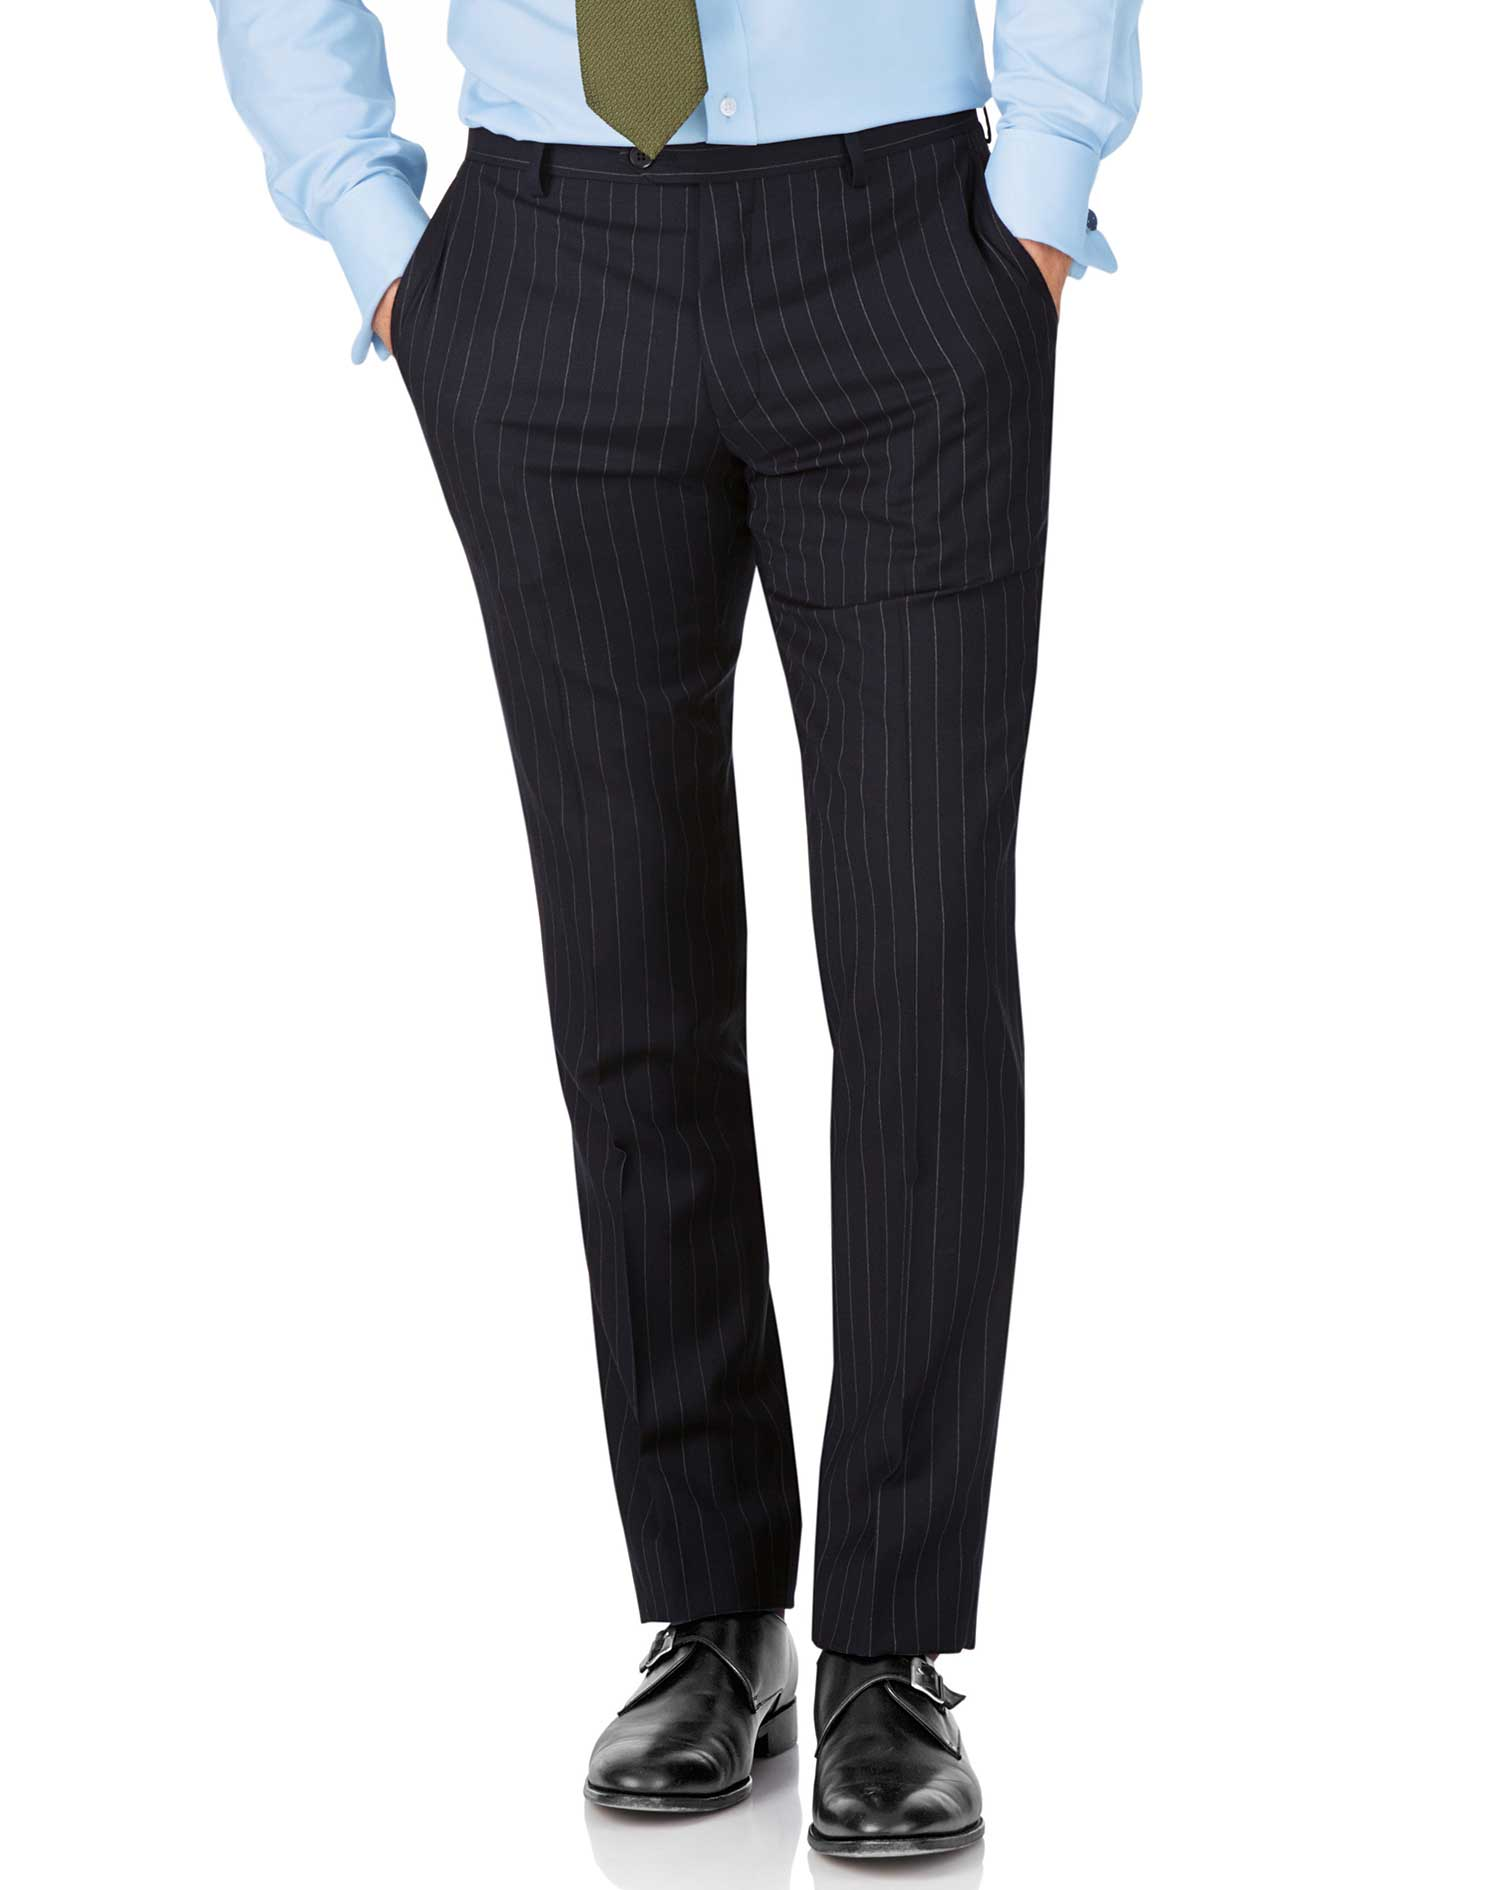 Navy Stripe Slim Fit Twill Business Suit Trousers Size W36 L30 by Charles Tyrwhitt